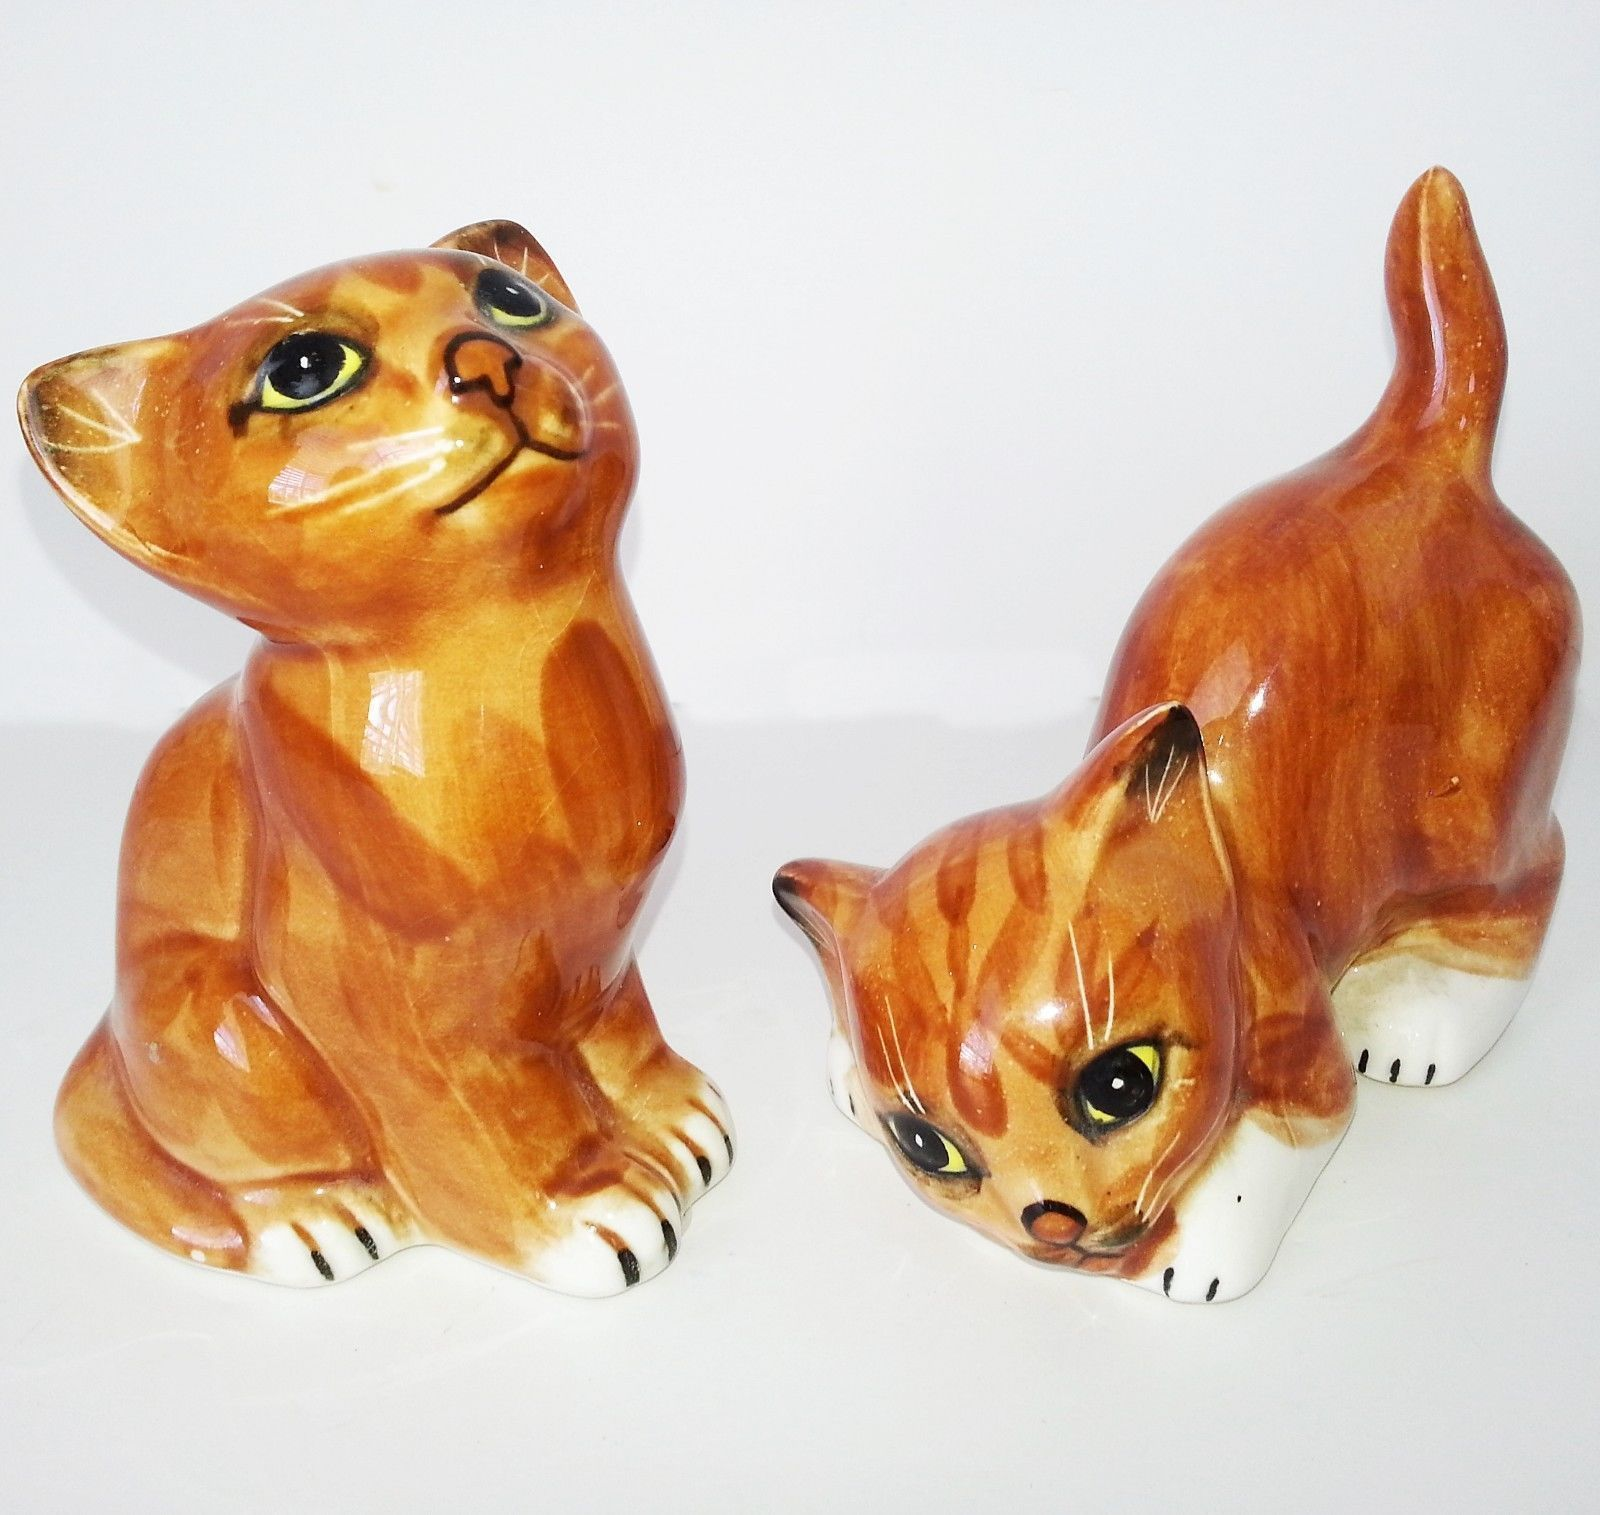 Details about Porcelain Cat Figurine by Mann Vintage